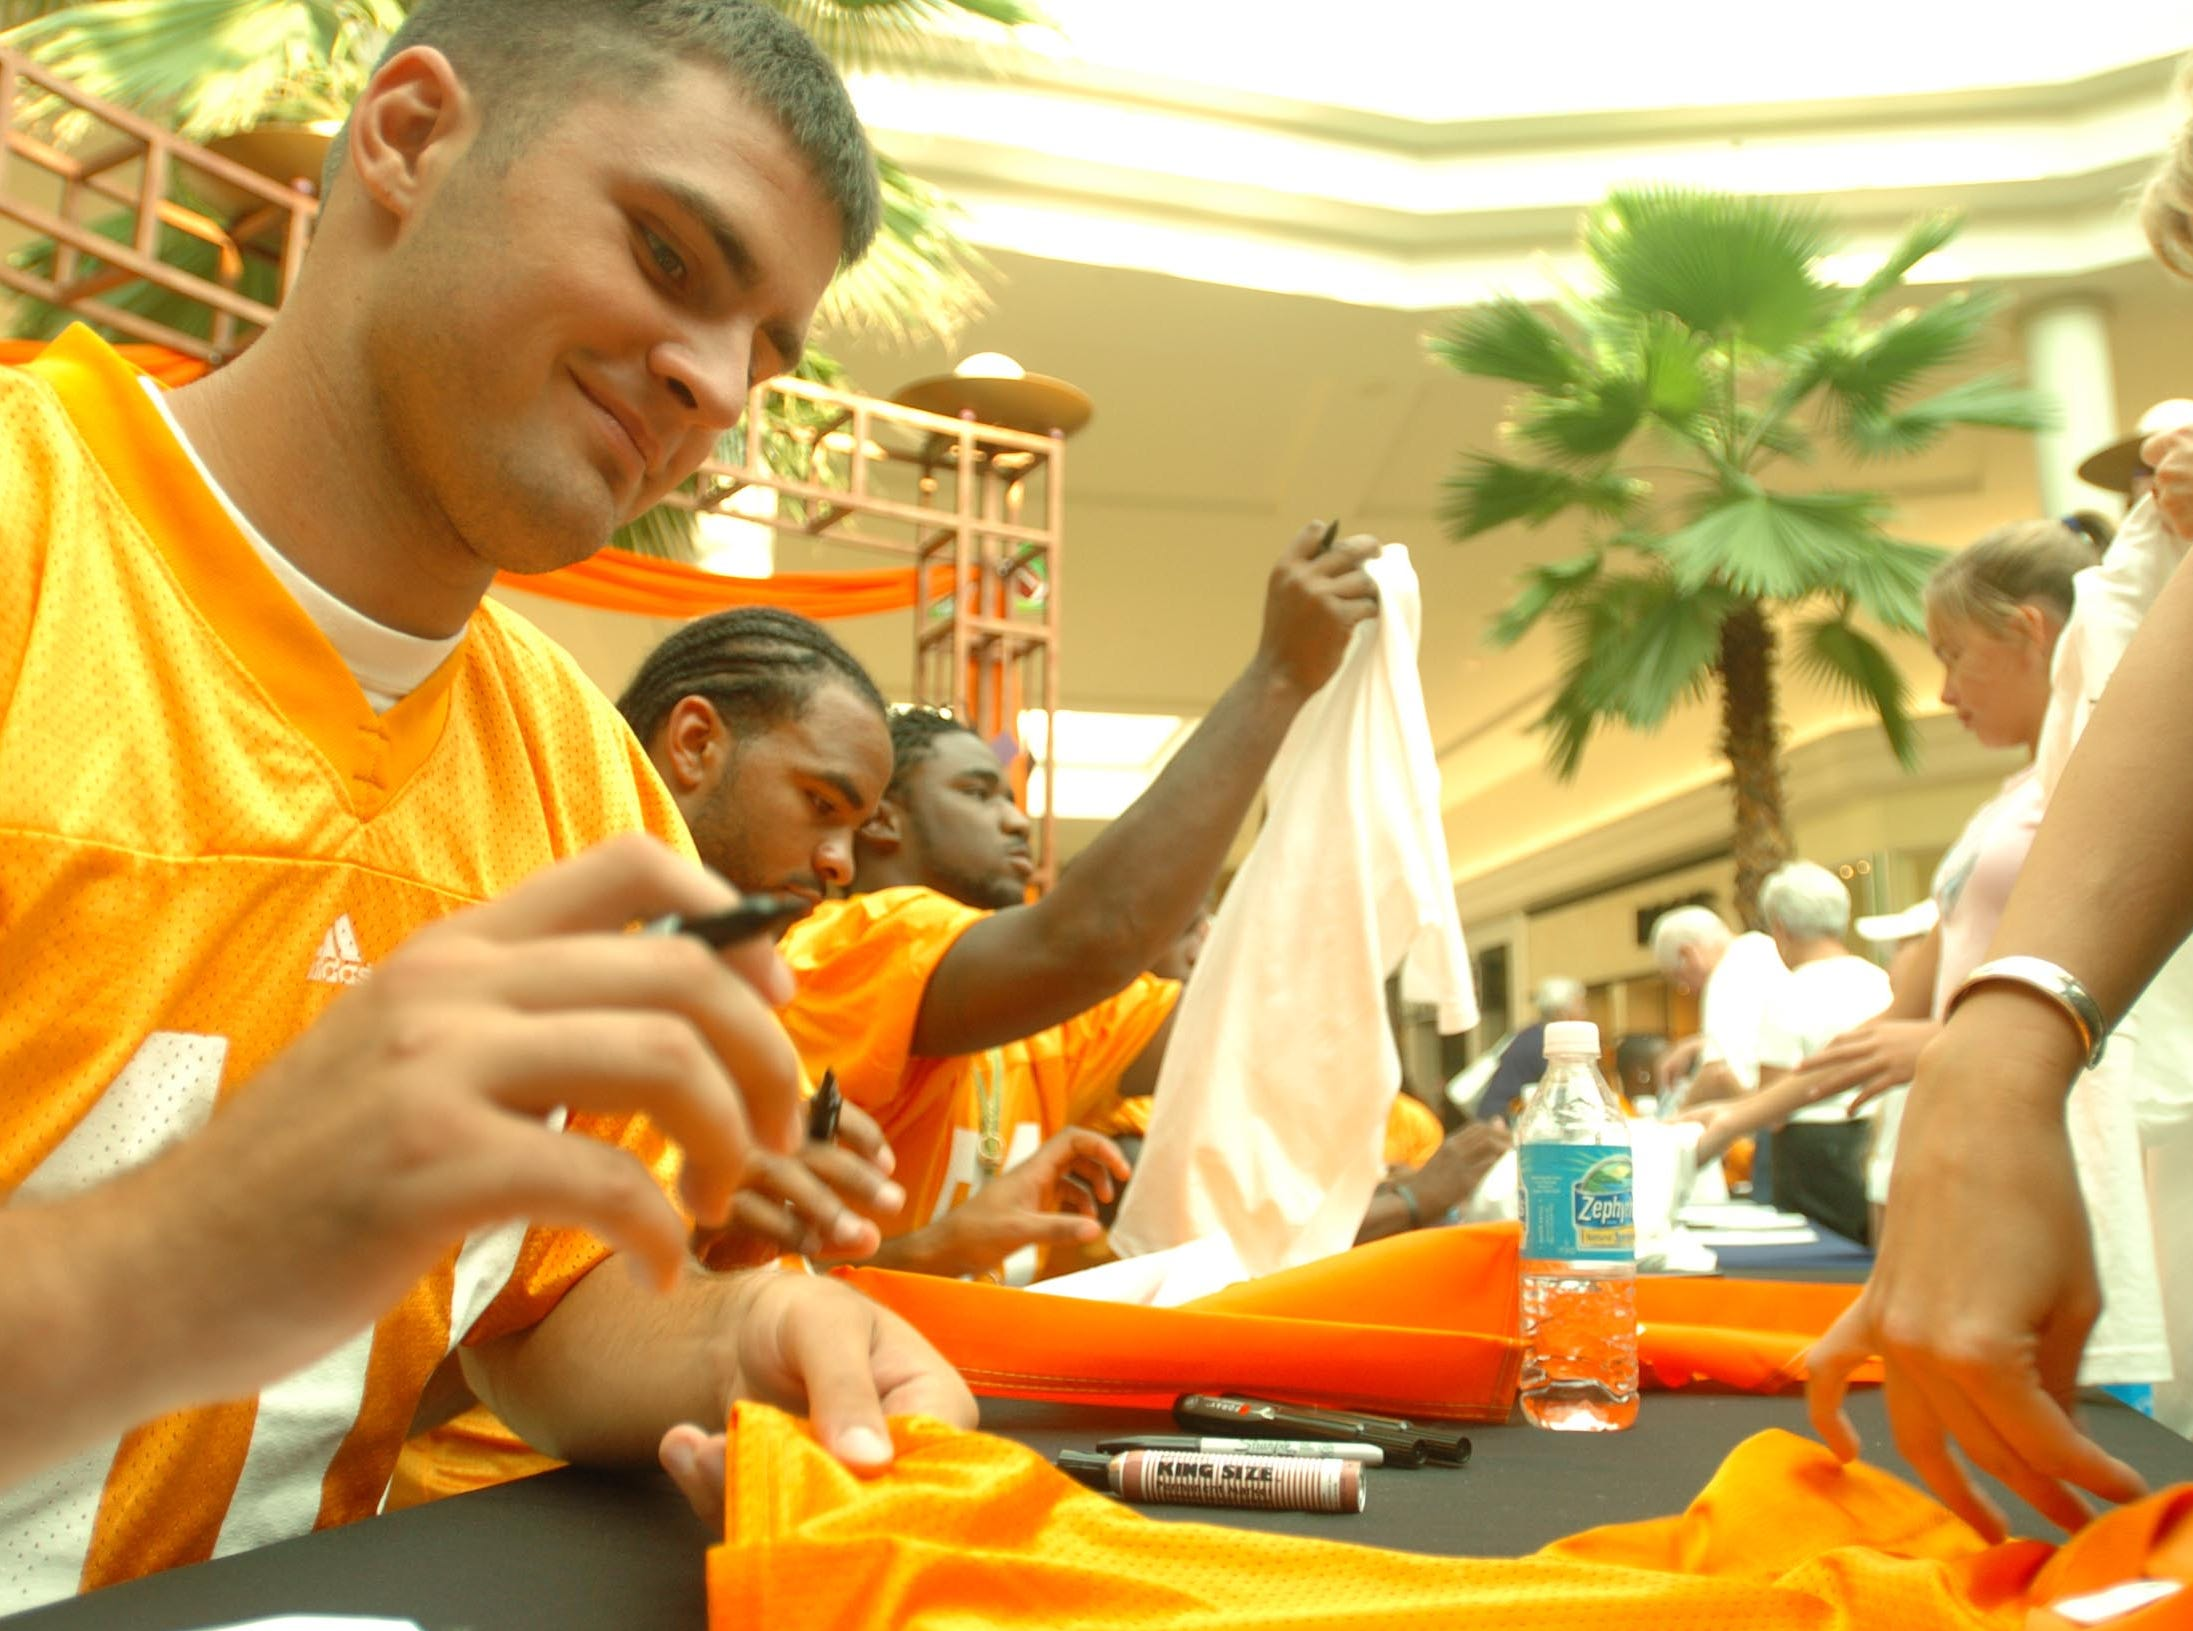 vols2.SY#4255--spt-- UT's Erik Ainge signs autographs for fans during the 2nd annual OrangeAid at West Town Mall Monday. Proceeds collected from the event will go to the Red Cross. 2005 Saul Young/News Sentinel